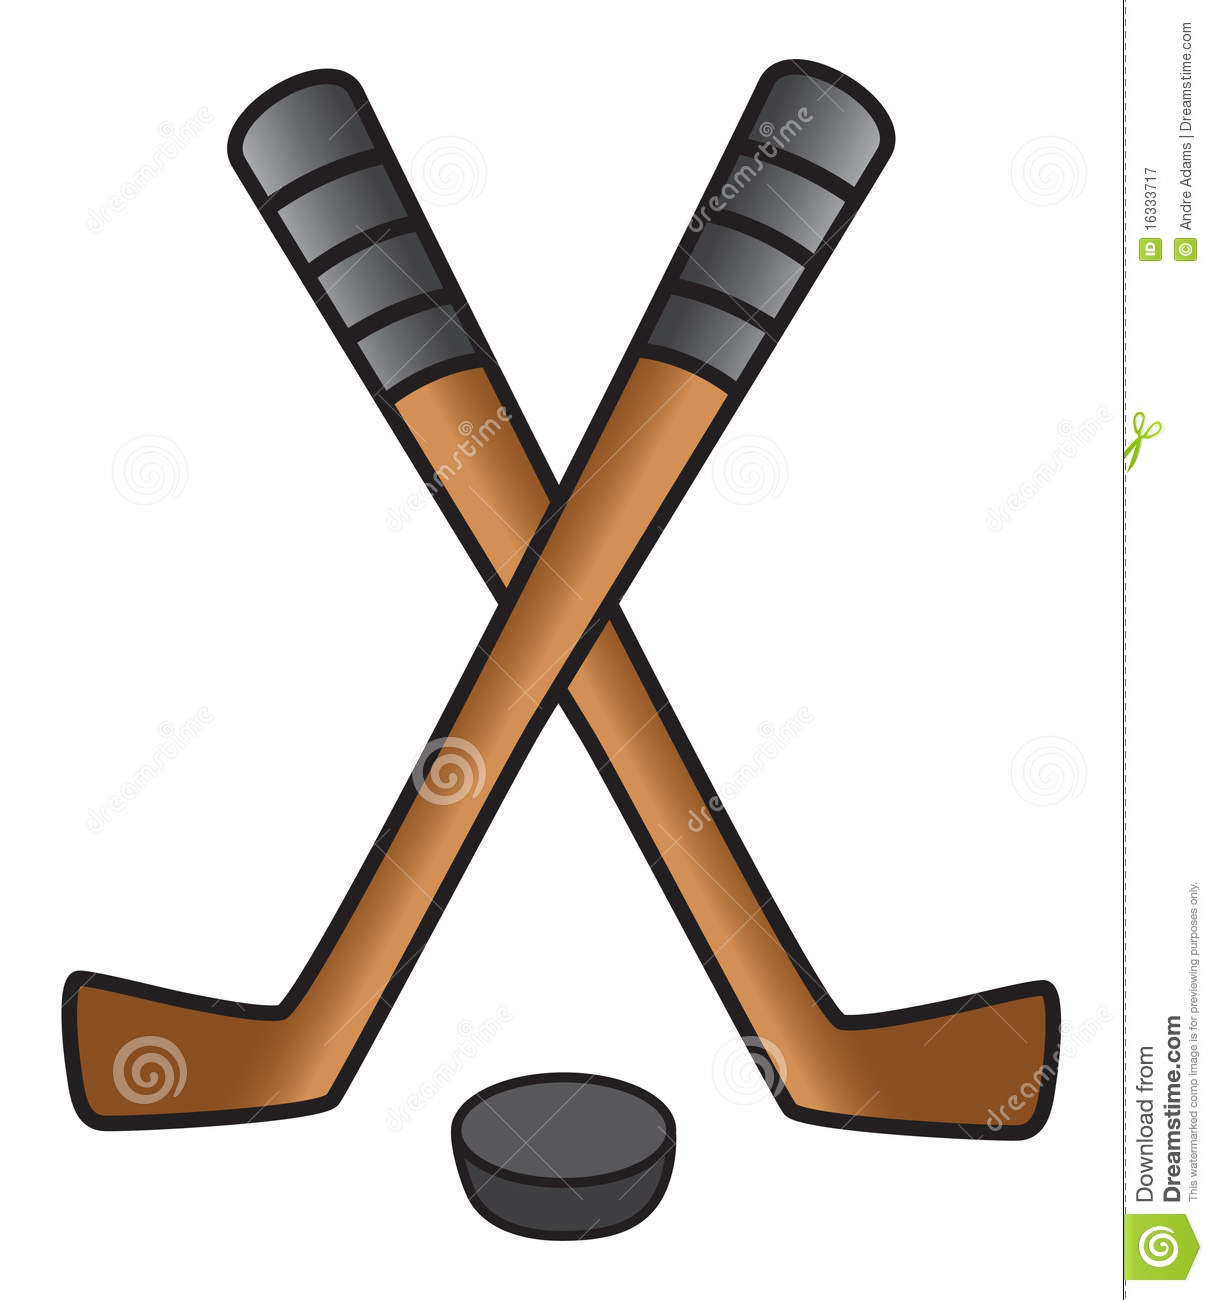 Hockey Stick & Puck Royalty Free Stock Photography - Image: 16333717